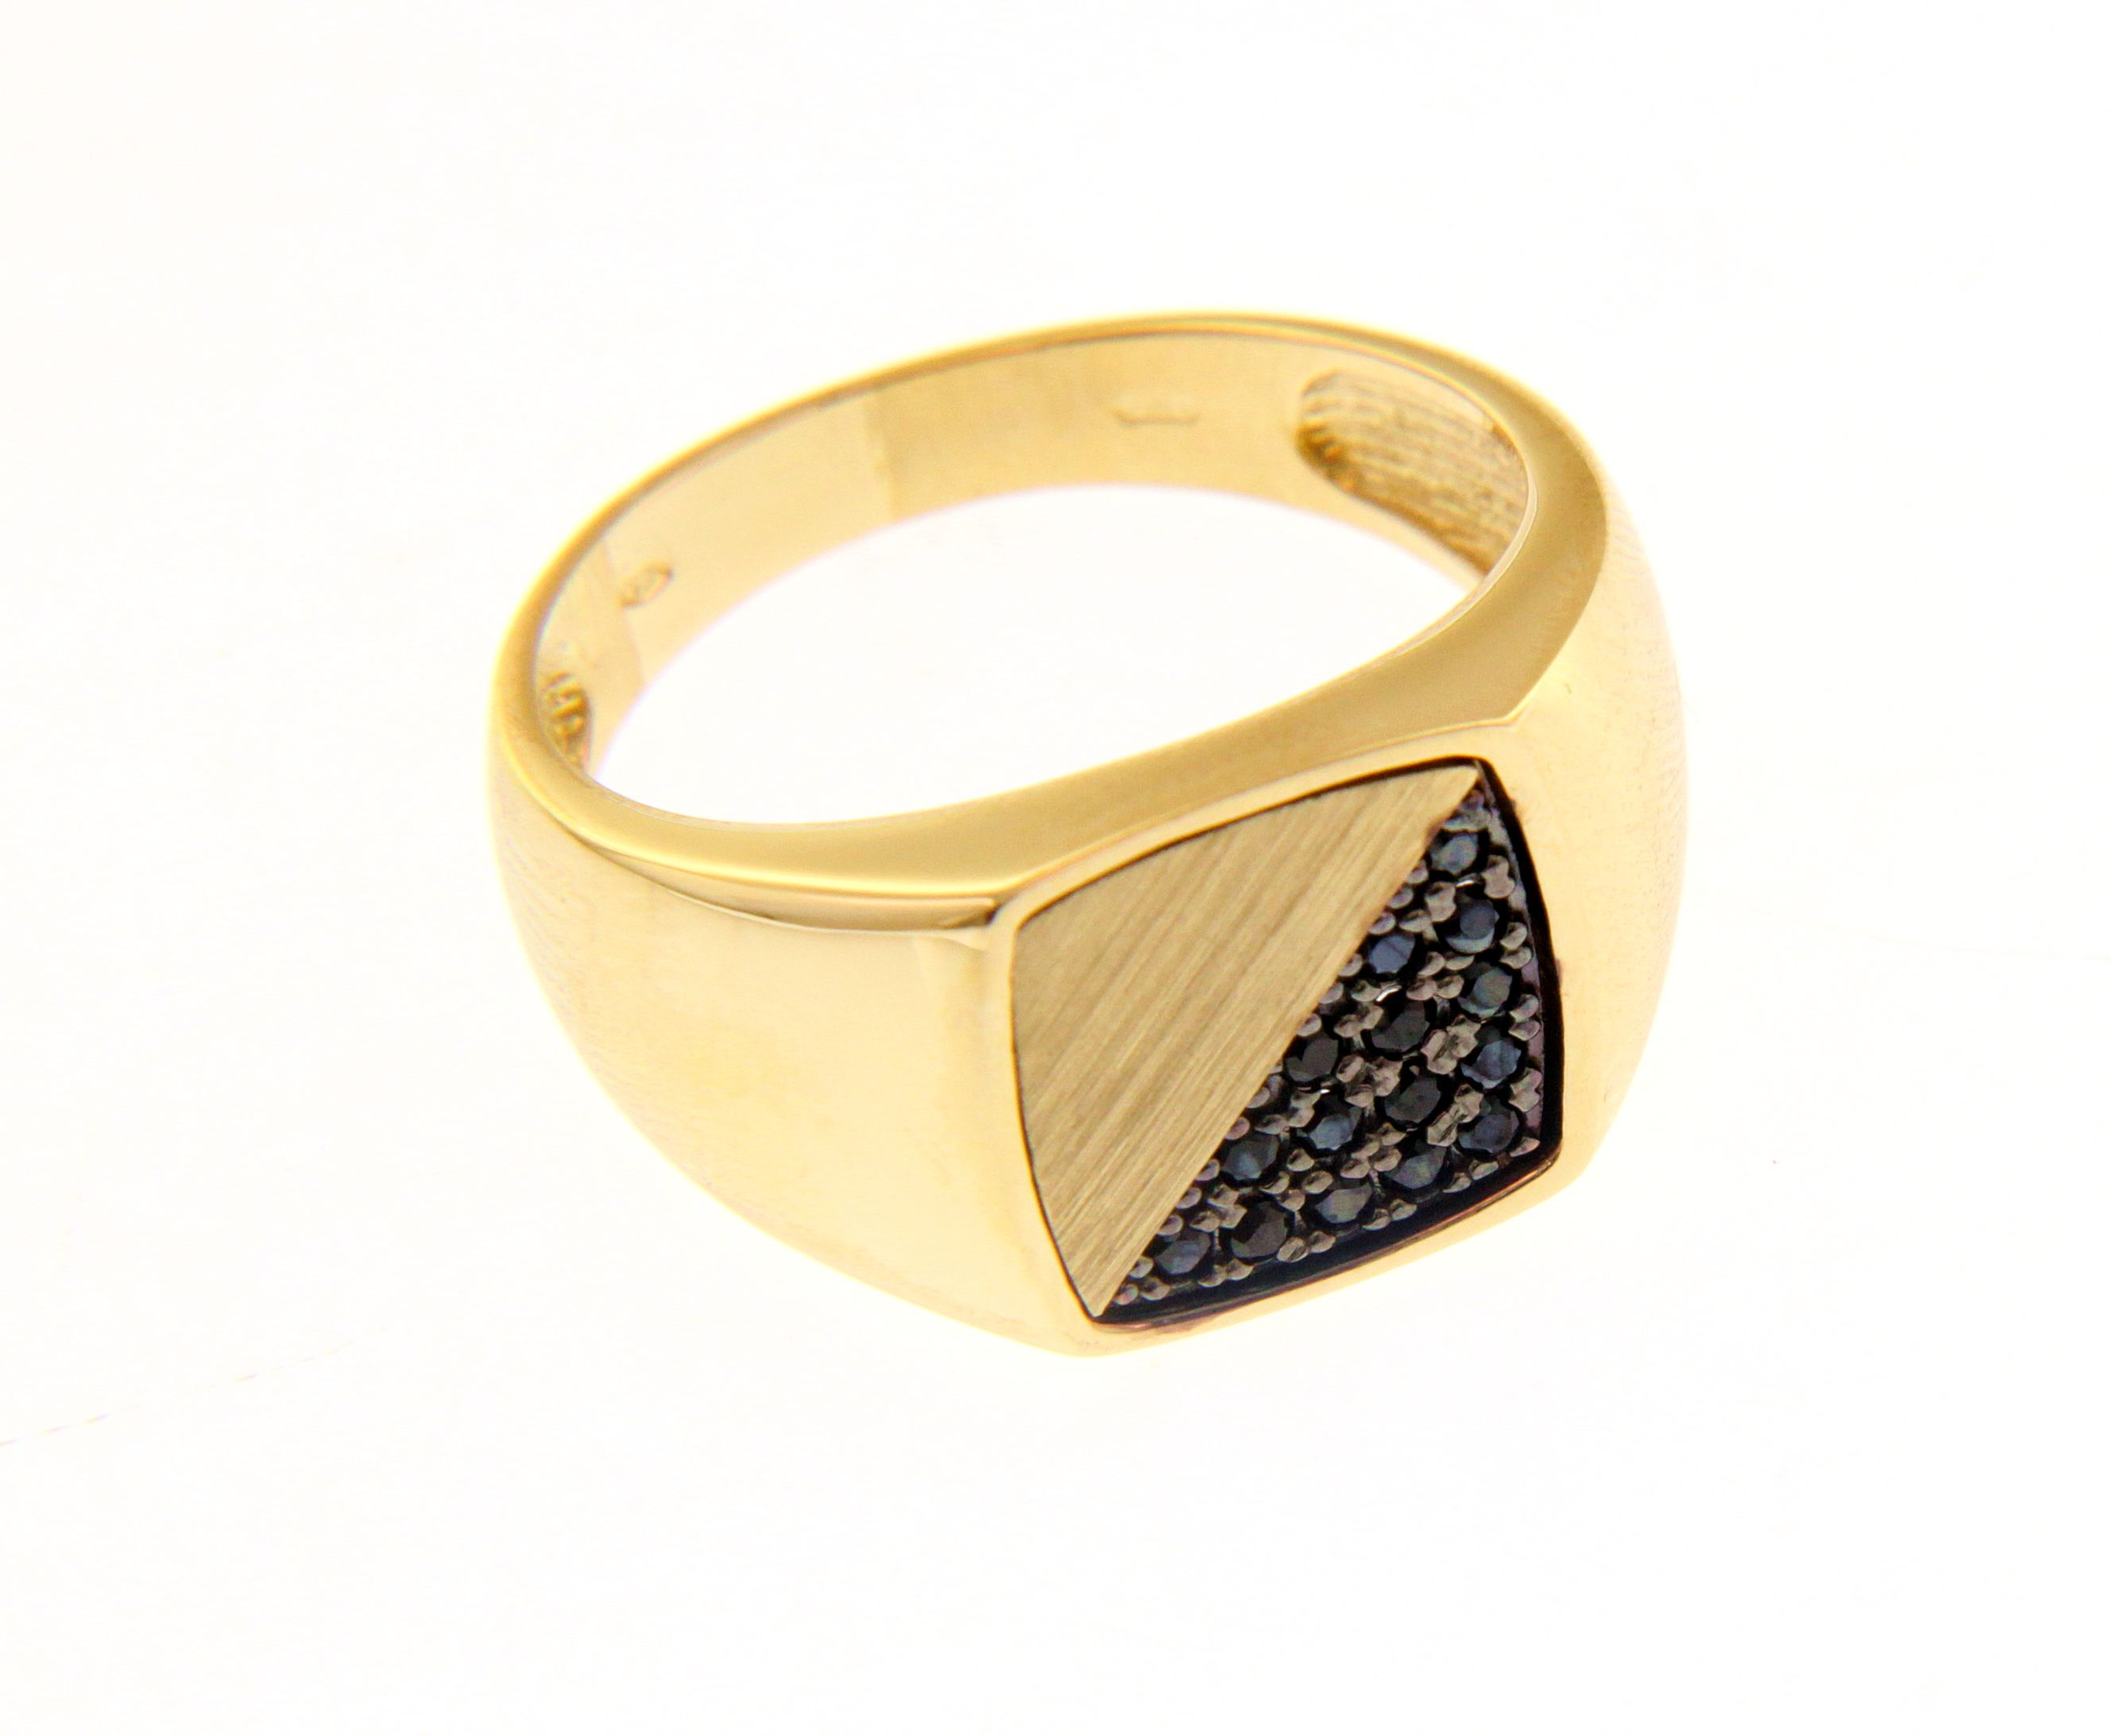 Stylish and bold 18ct Yellow gold ring with Black Spinel